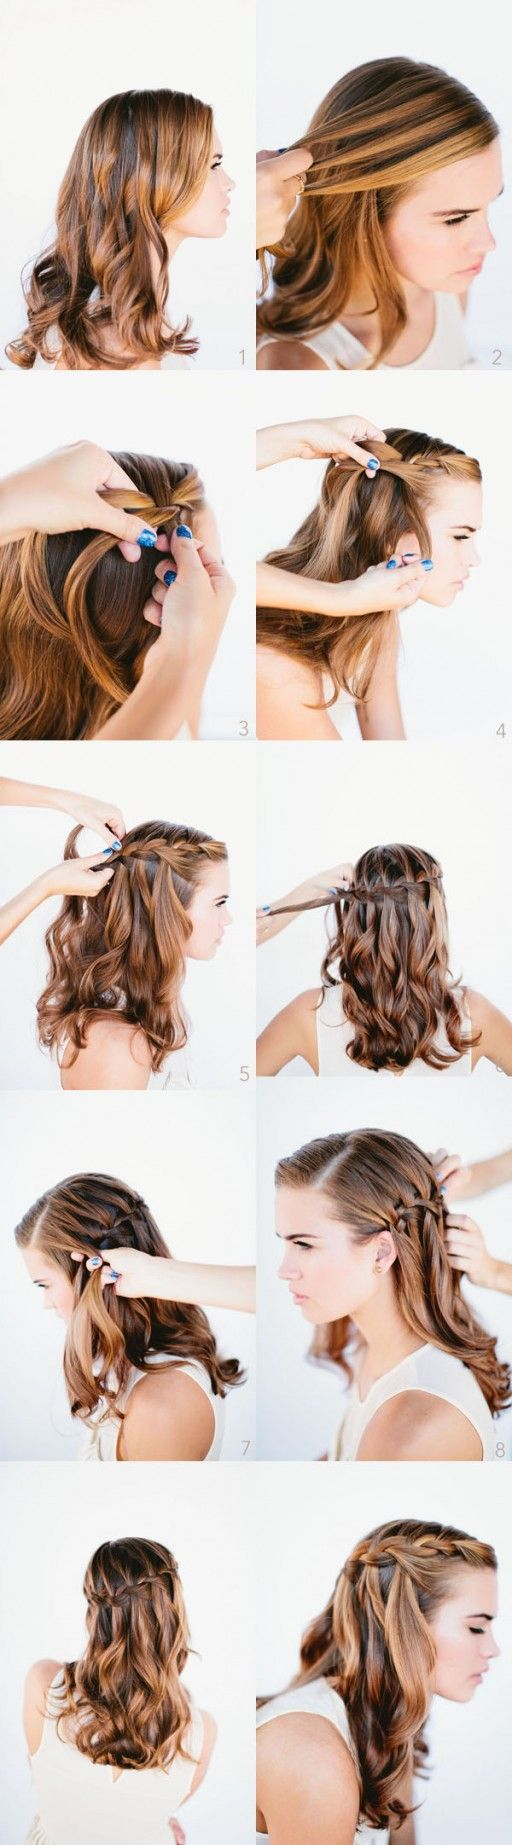 sweetest wedding hairstyles for every bride | hair steps, ombre